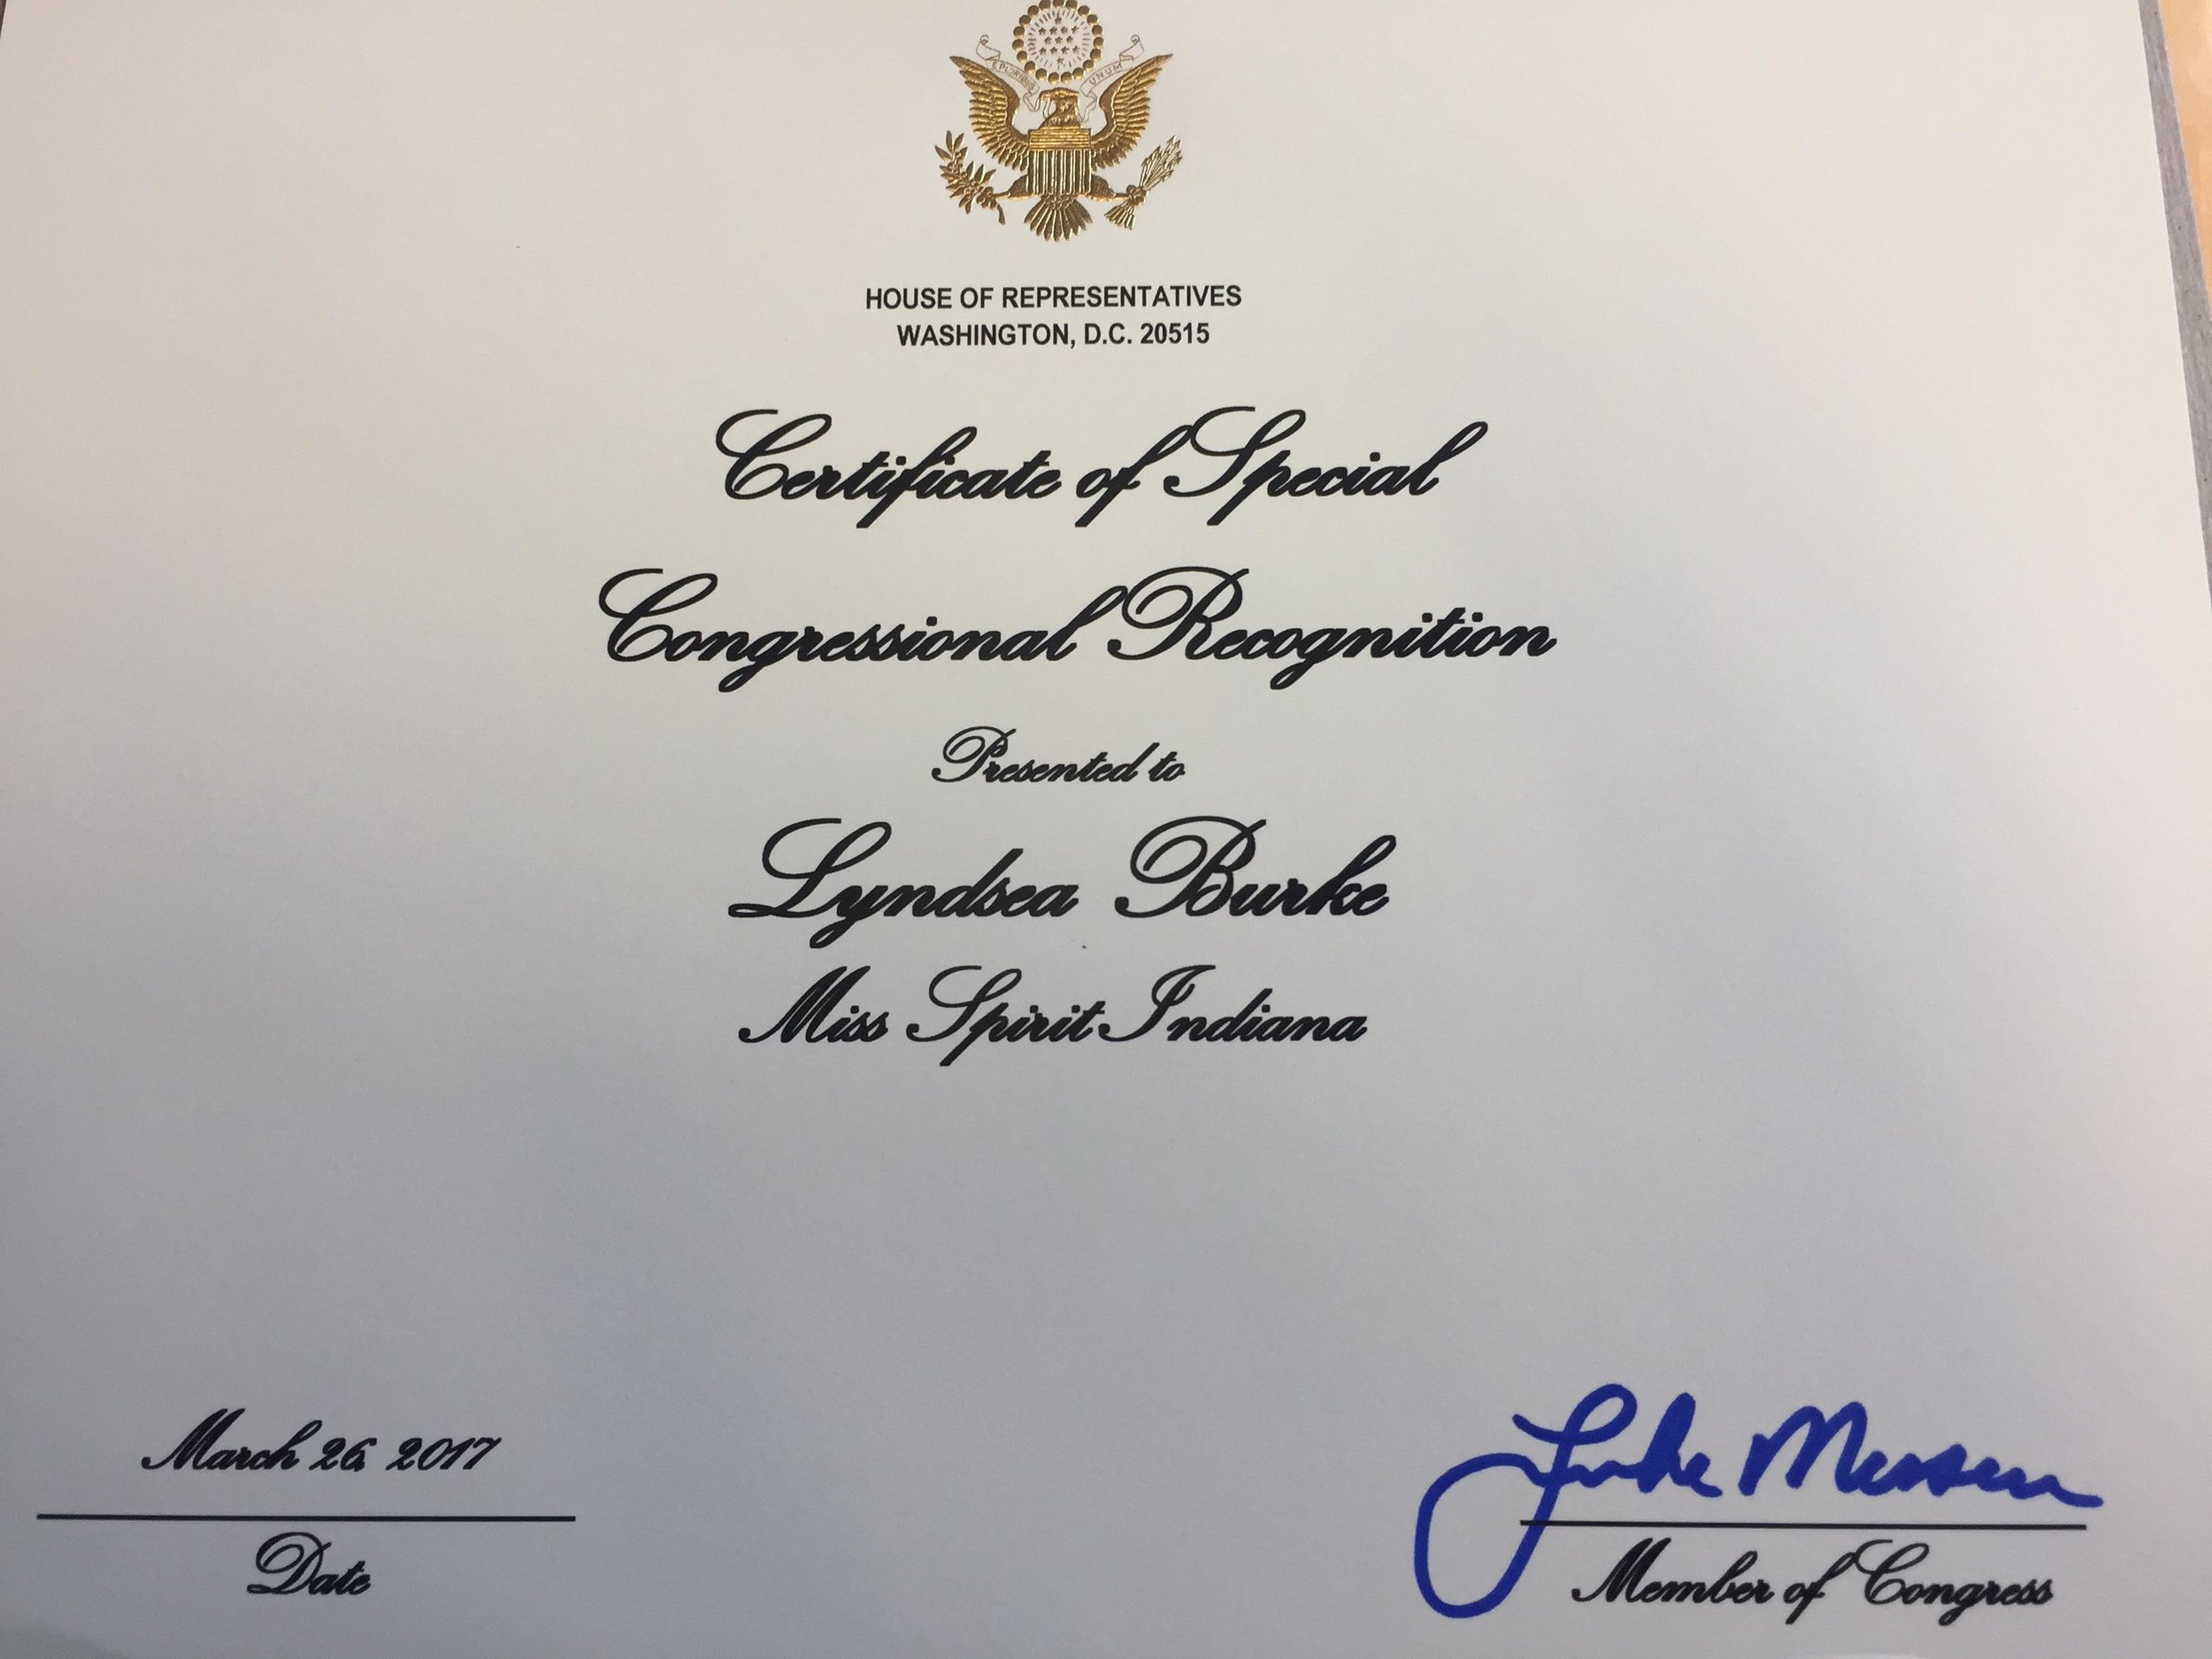 My certificate of Congressional Recognition. So humbled to have received this from Rep.Luke Messer!